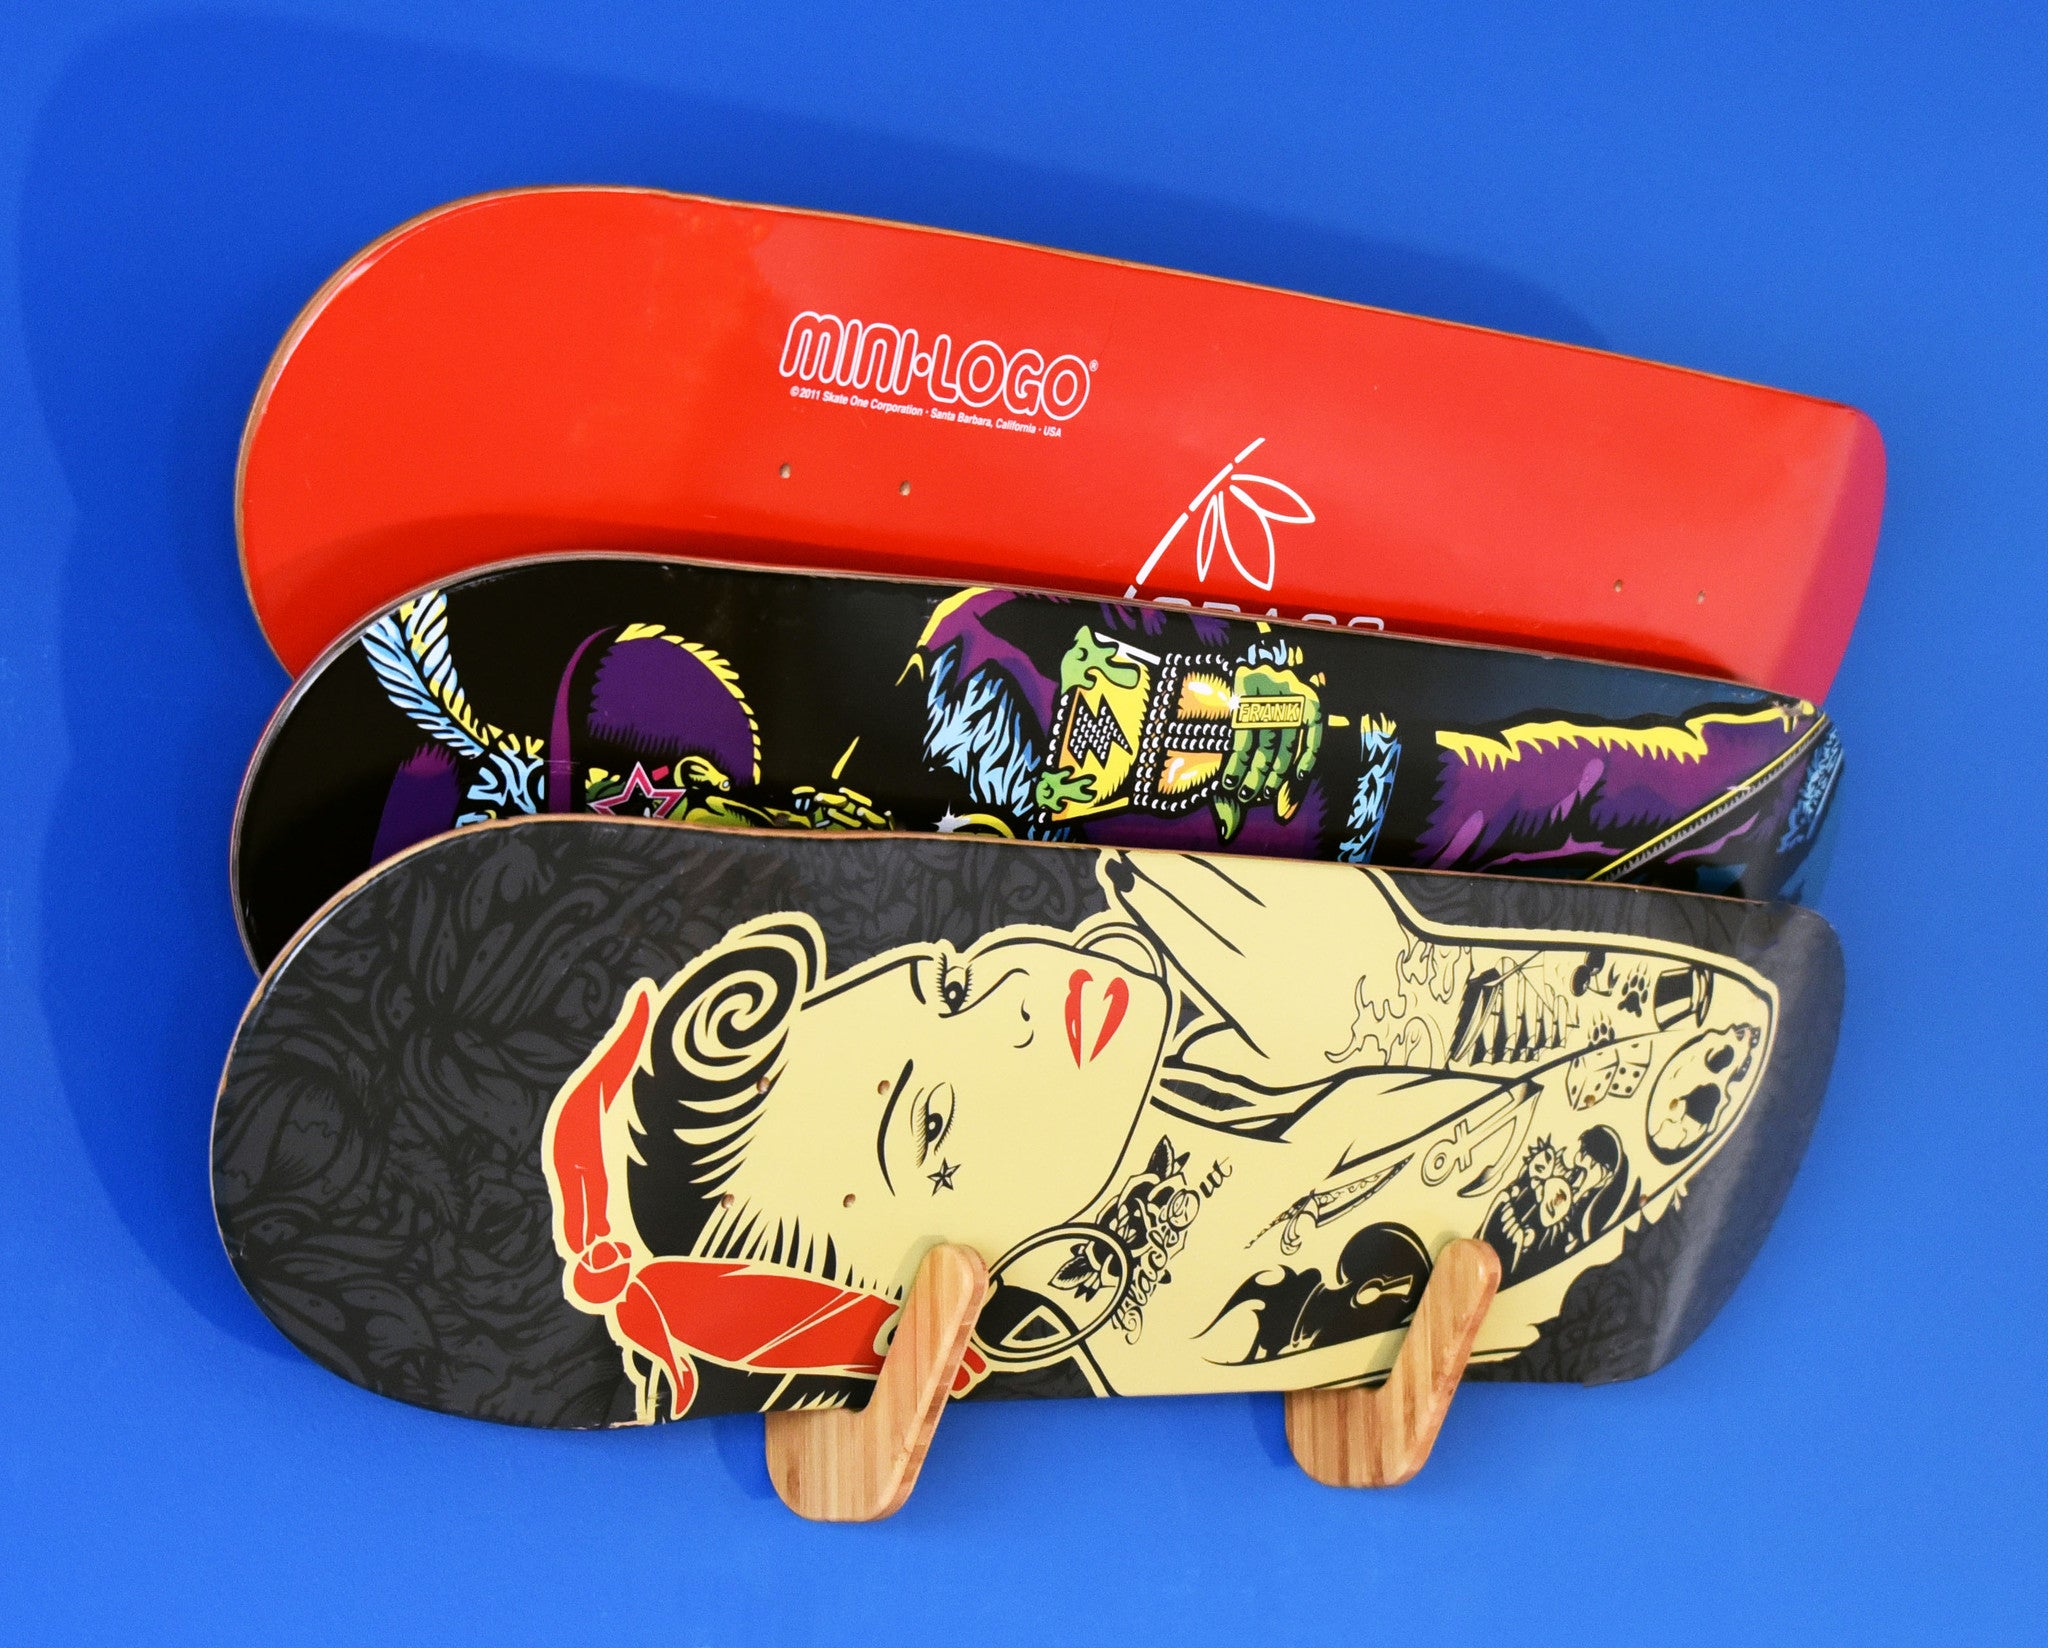 Grassracks Bamboo Skateboard Deck Rack - The Lana'i Trip